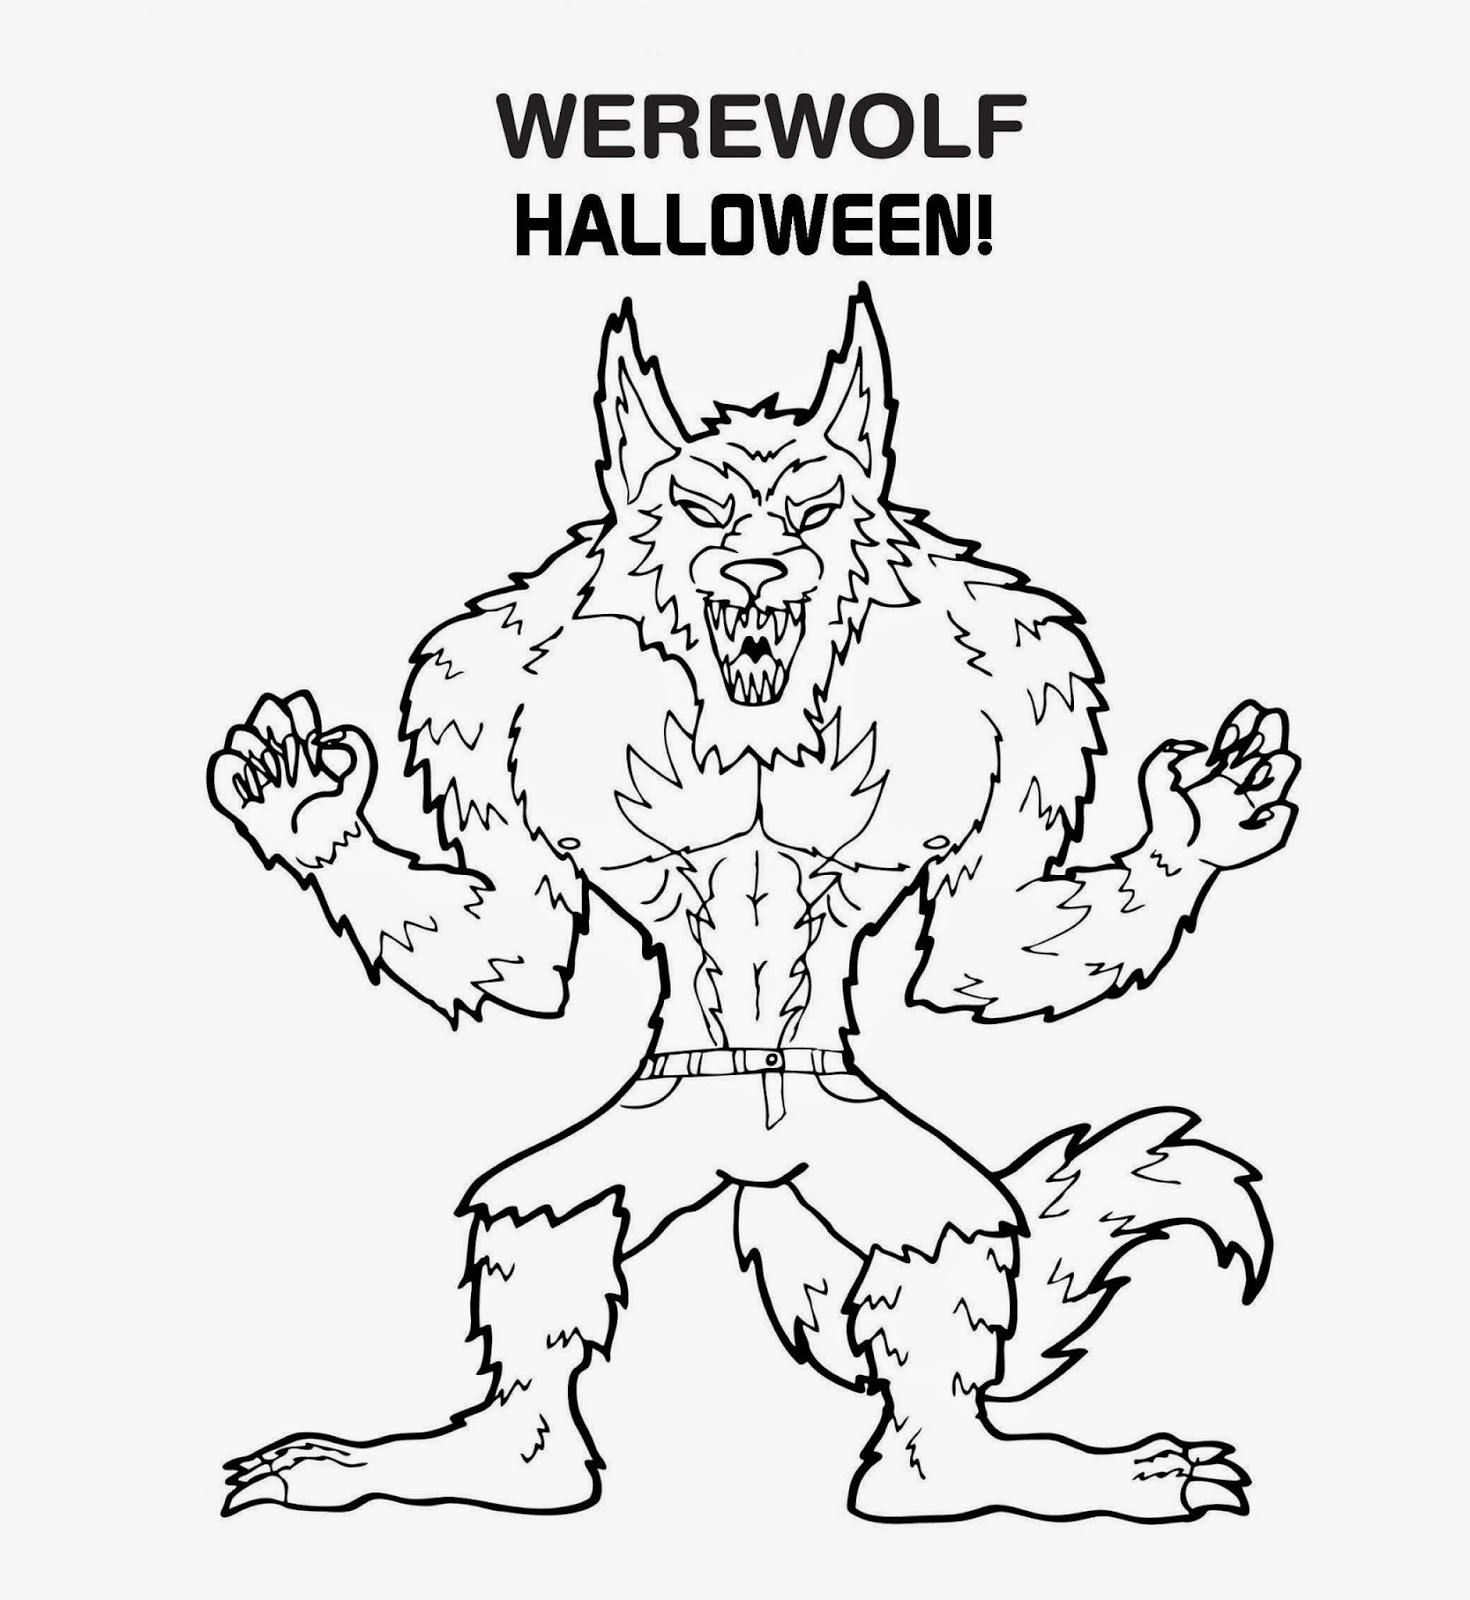 wolfman coloring pages werewolf coloring pictures coloring home coloring pages wolfman 1 1